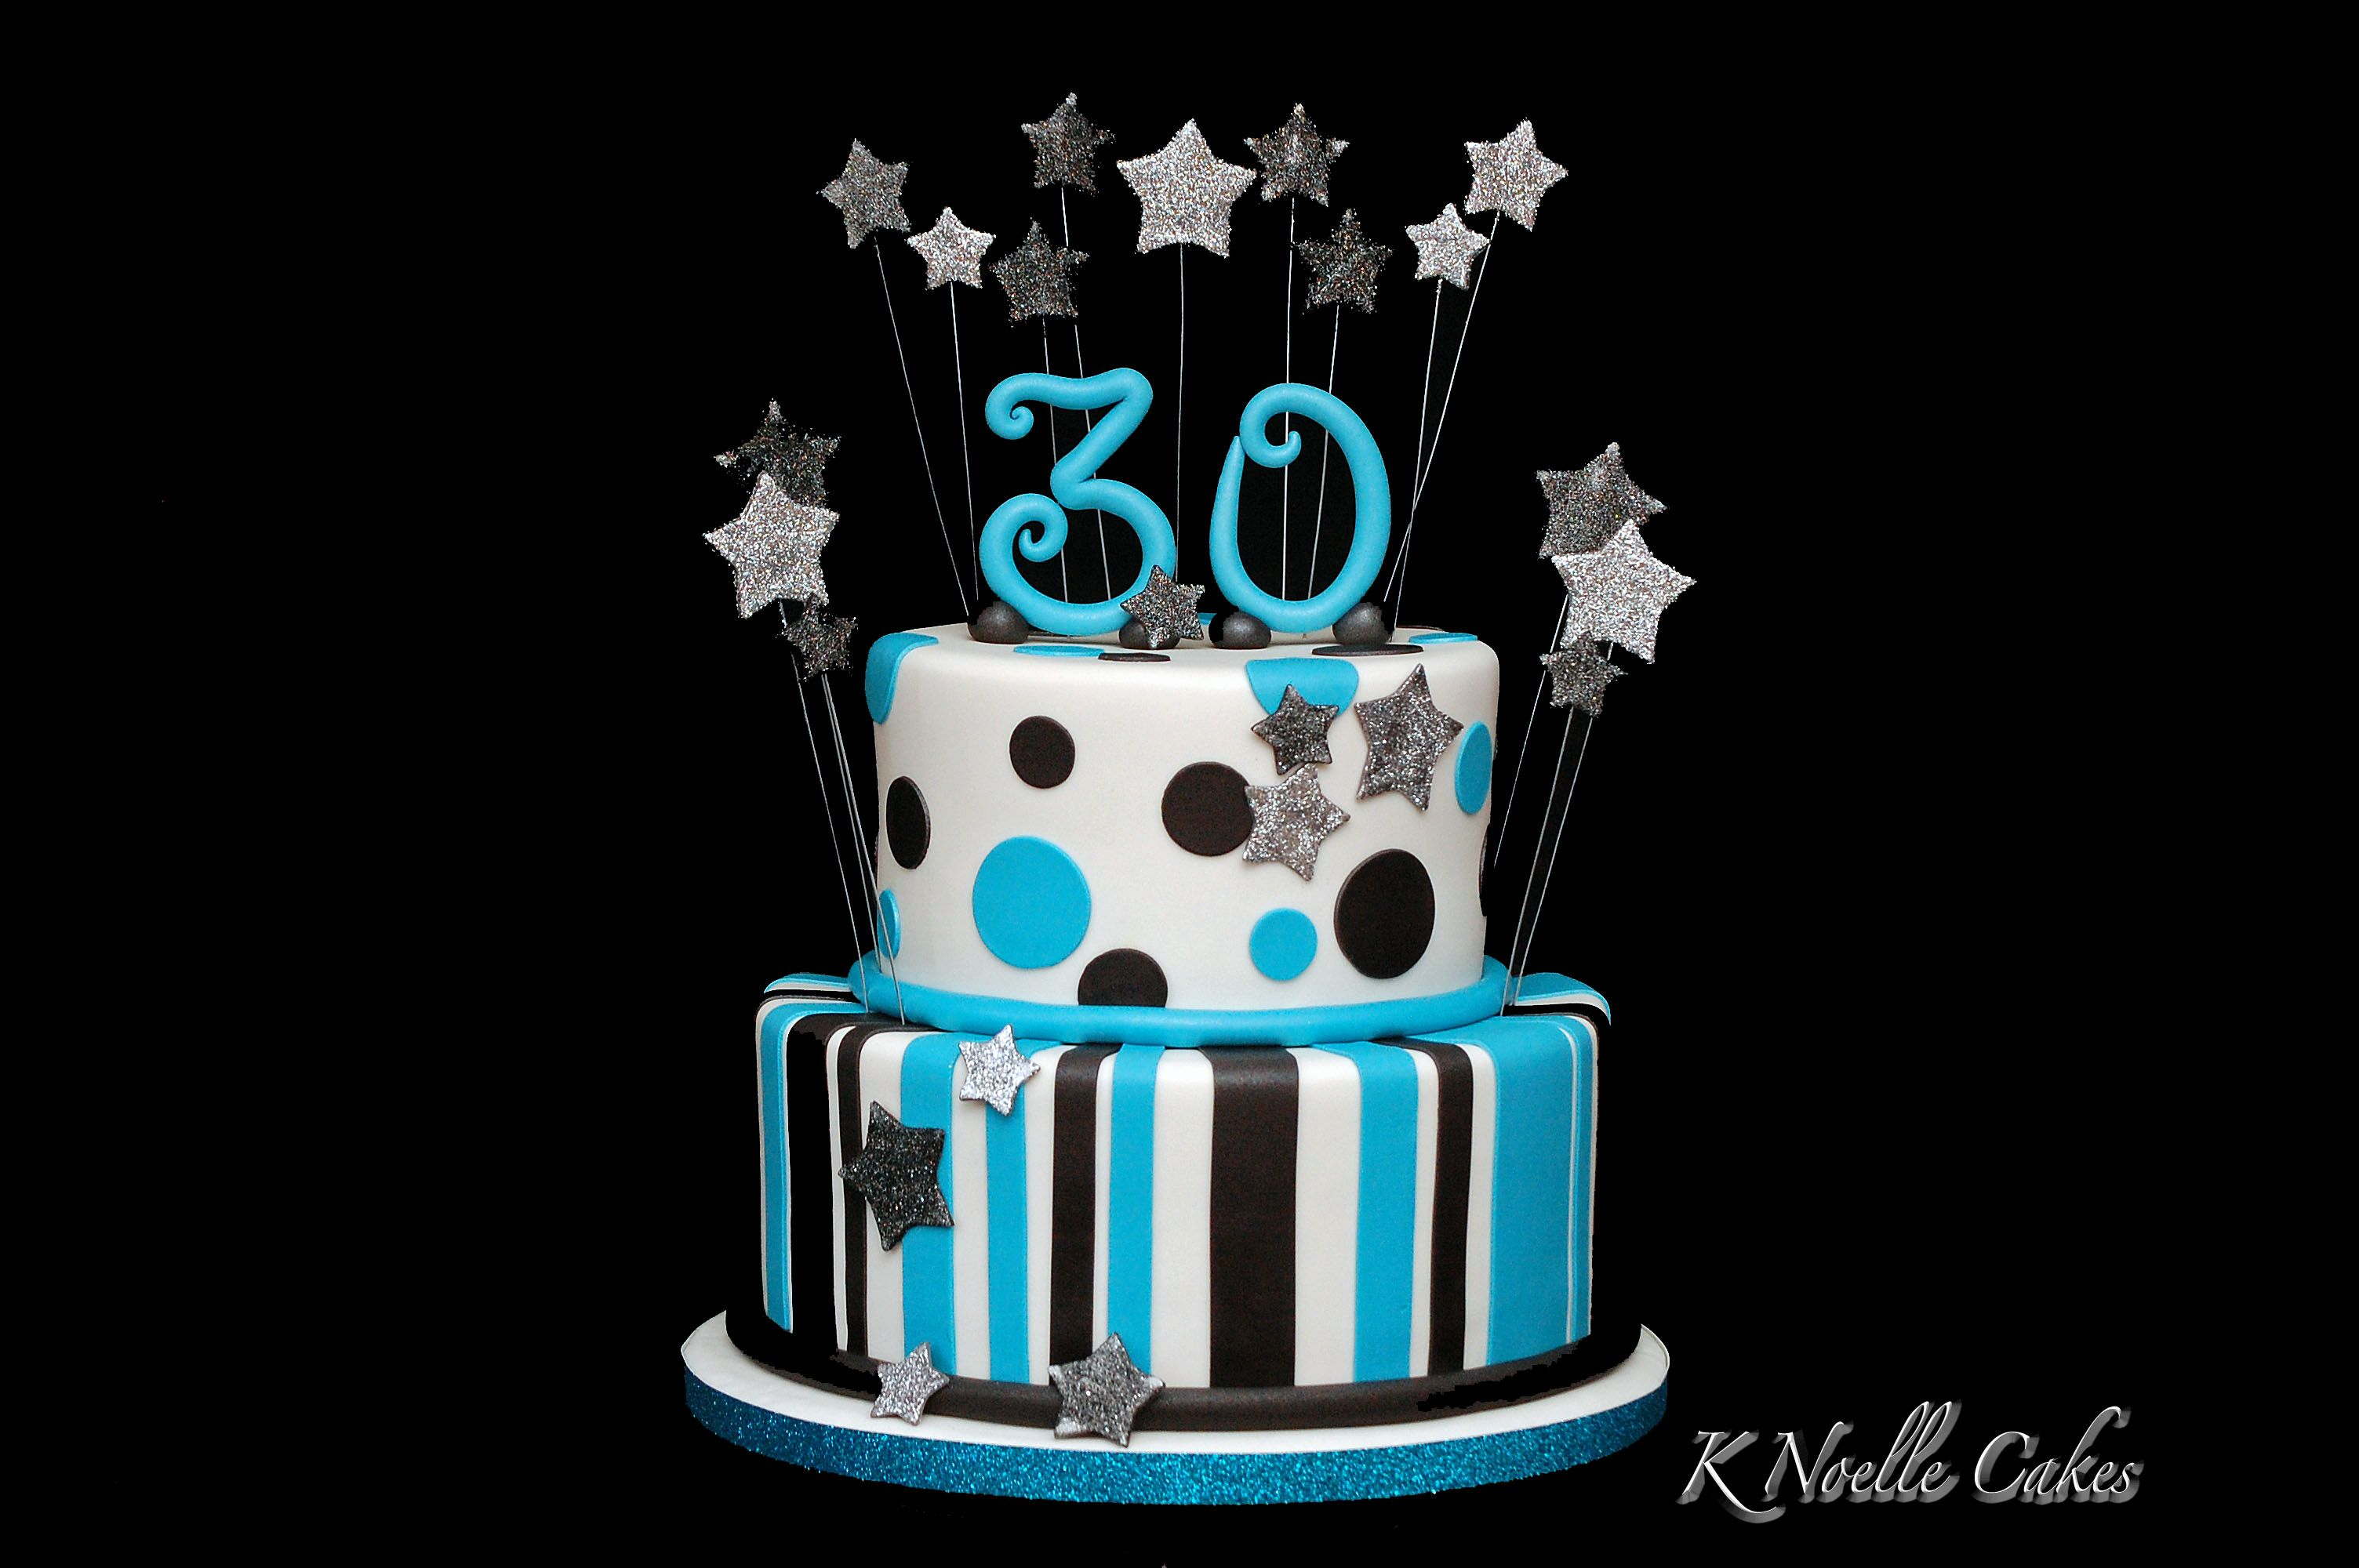 30th Birthday Cake By K Noelle Cakes Geburtstagstorte Kuchen